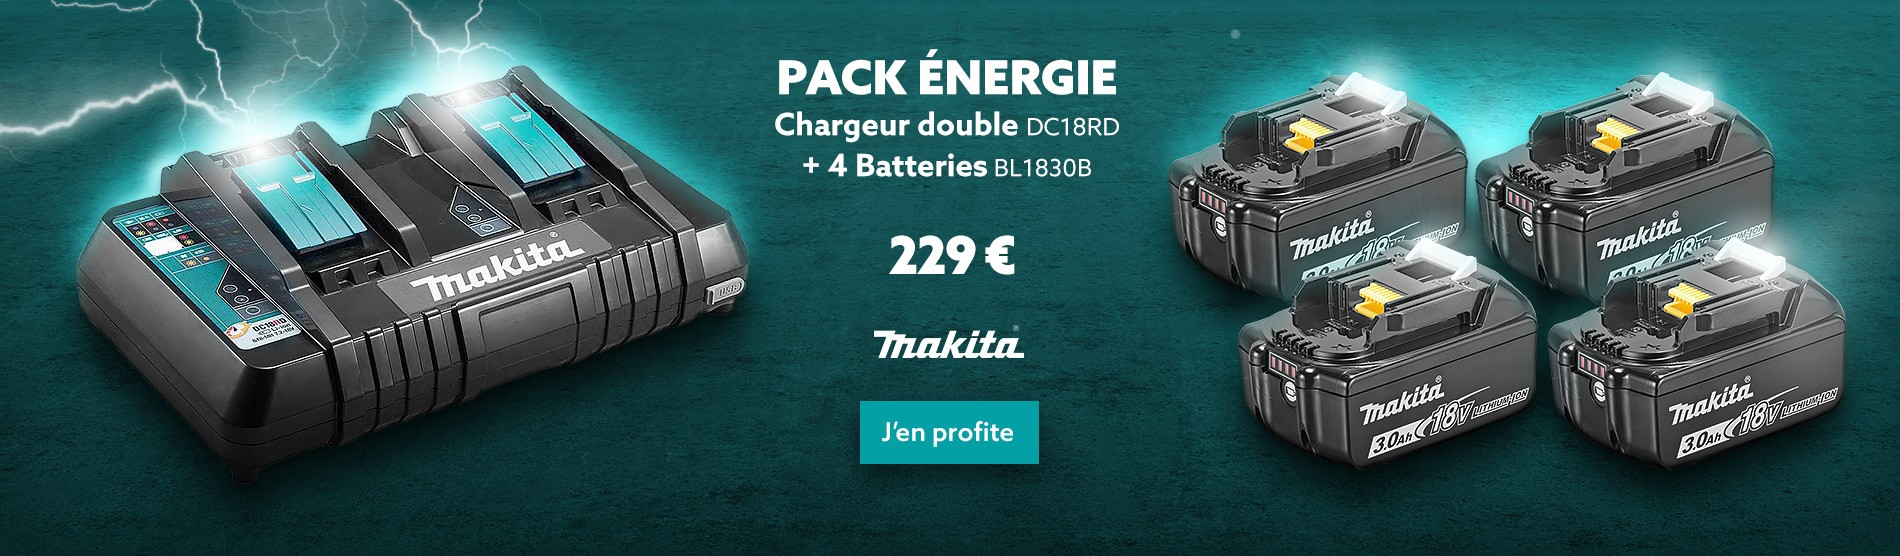 Pack Chargeur double MAKITA DC18RD + 4 Batteries BL1830B